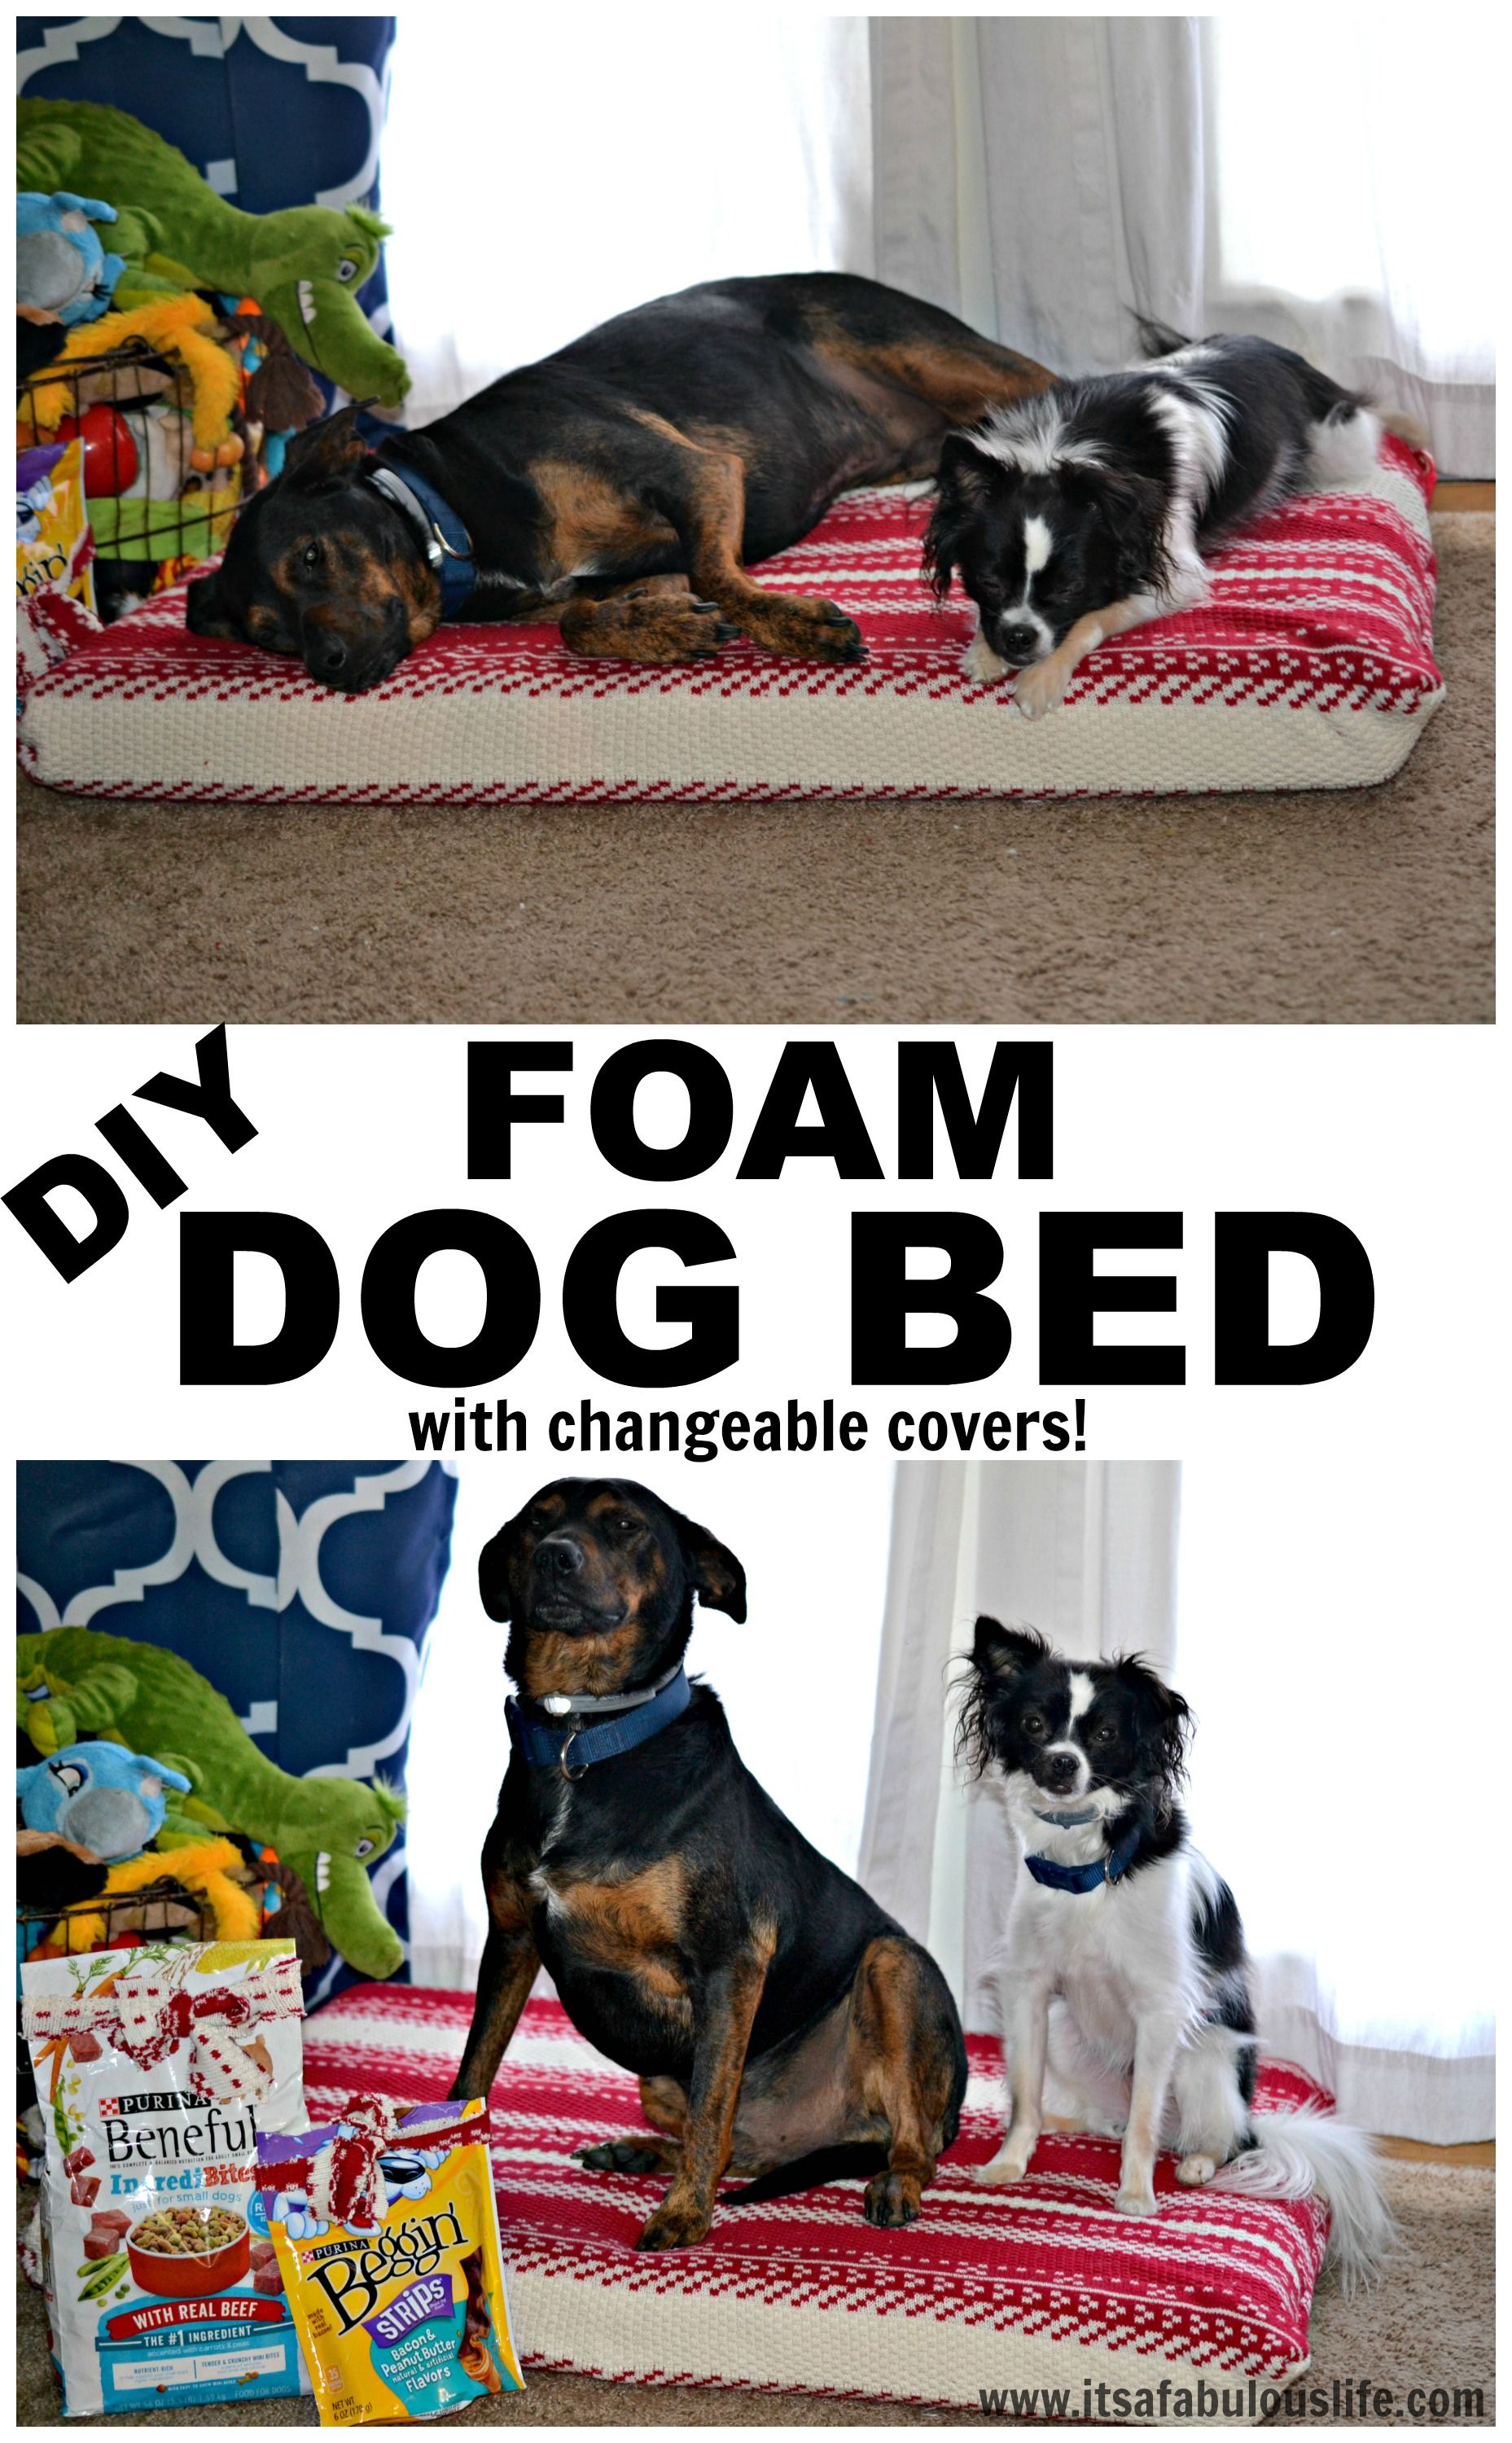 DIY Foam Dog Bed Diy dog bed, Dog bed, Dogs